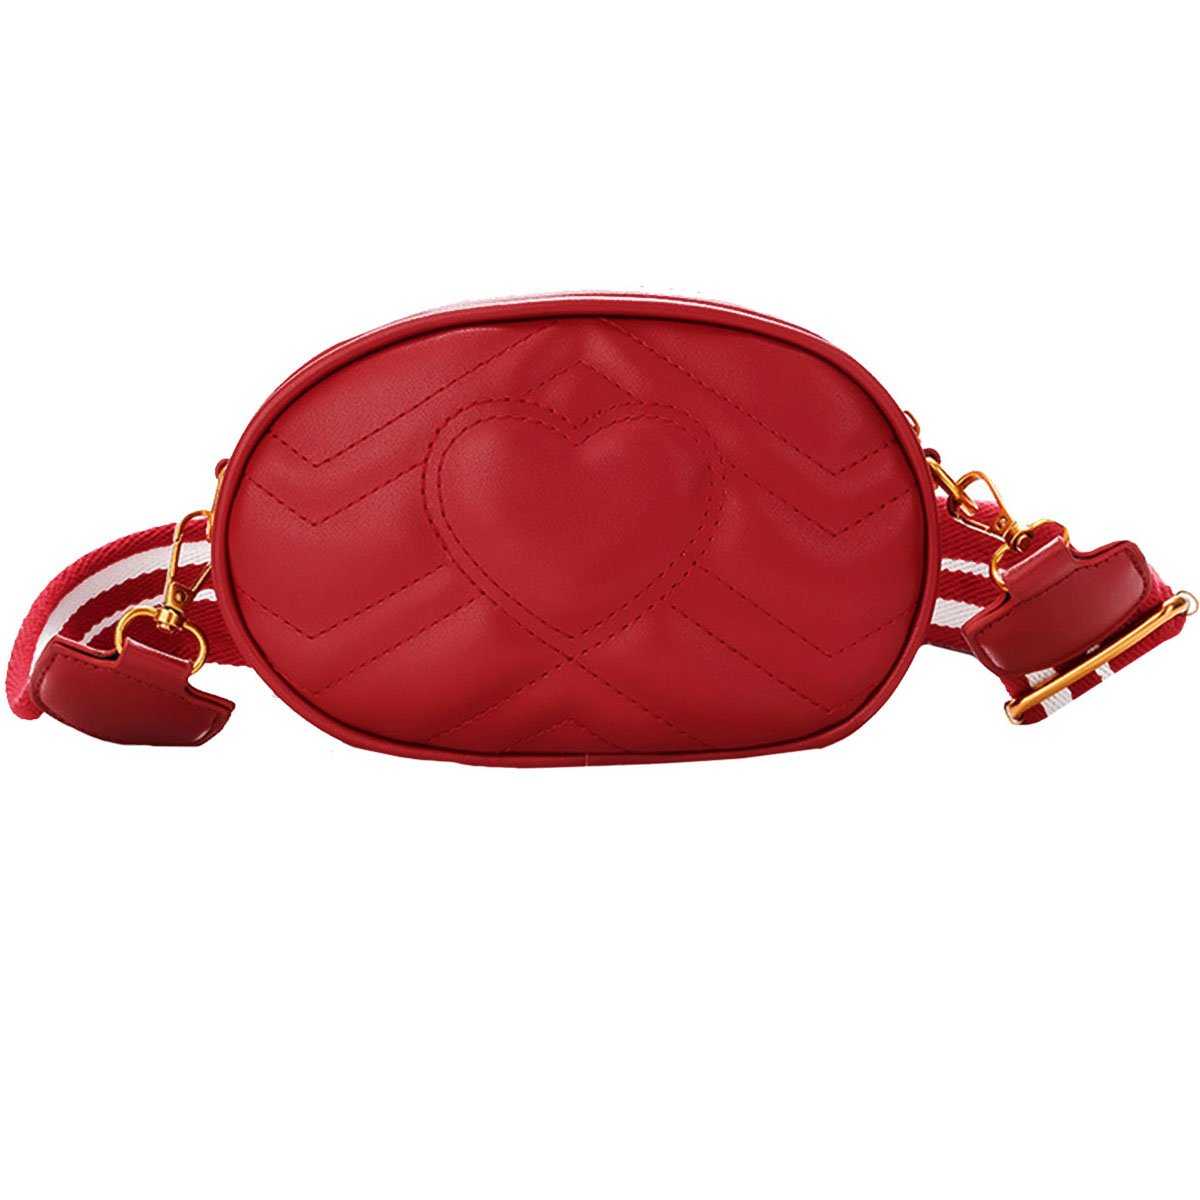 Clara Fashion Women Elegant Faux Leather Waist Bag Love Heart Shape Embroidery Fanny Pack Waist Pouch Red